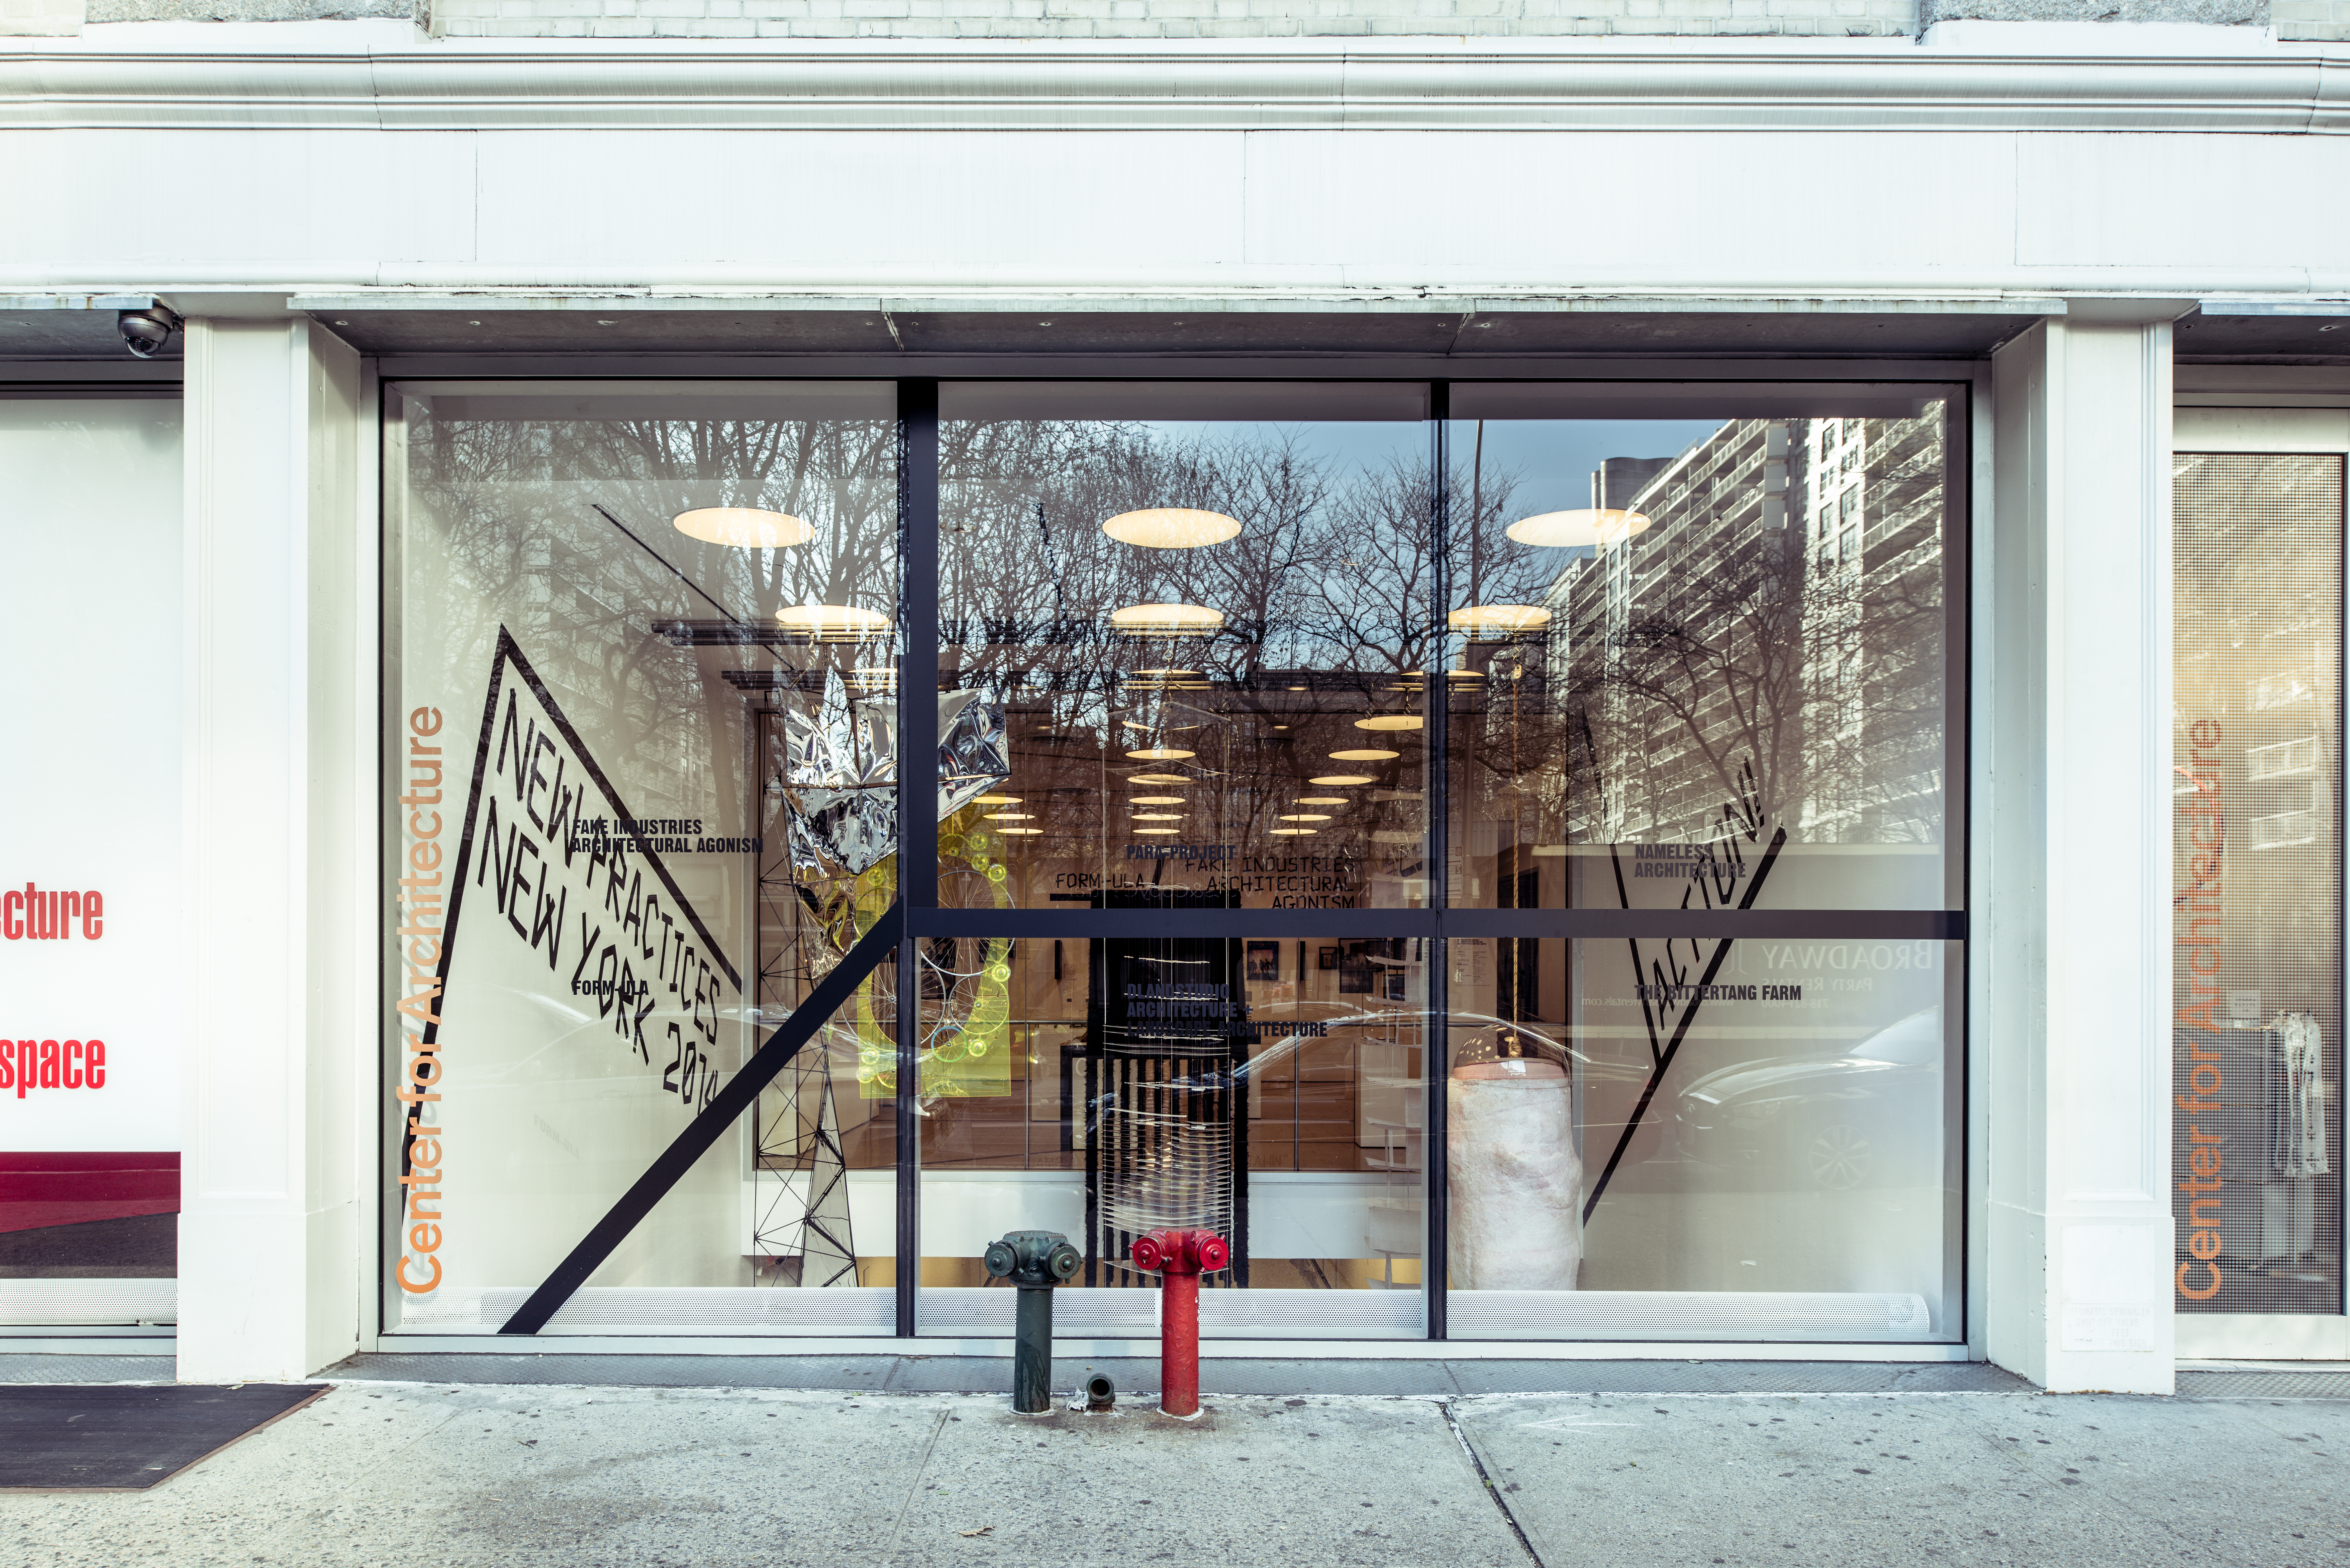 On View: At the Center for Architecture